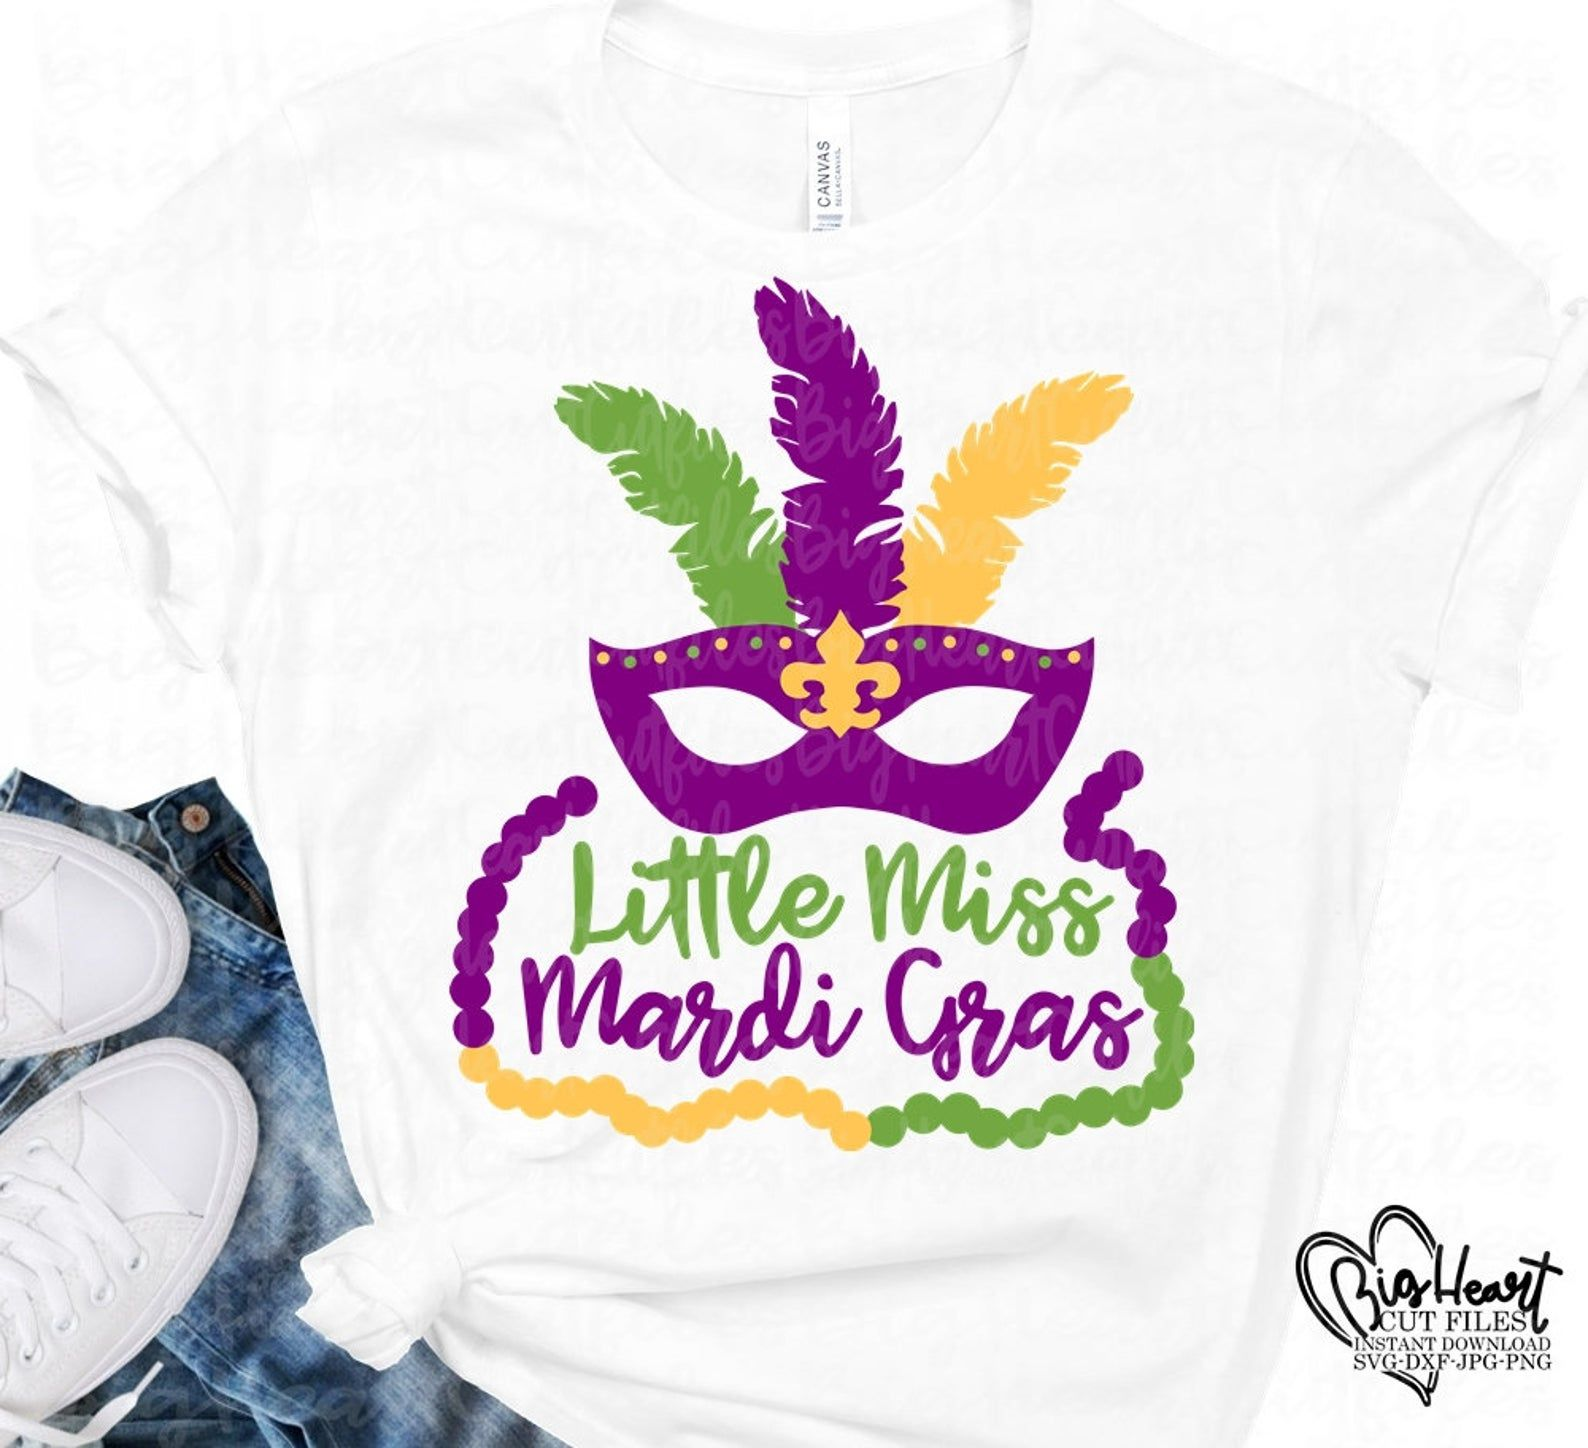 Little Miss Mardi Gras Svg Mardi Gras Mask With Feathers